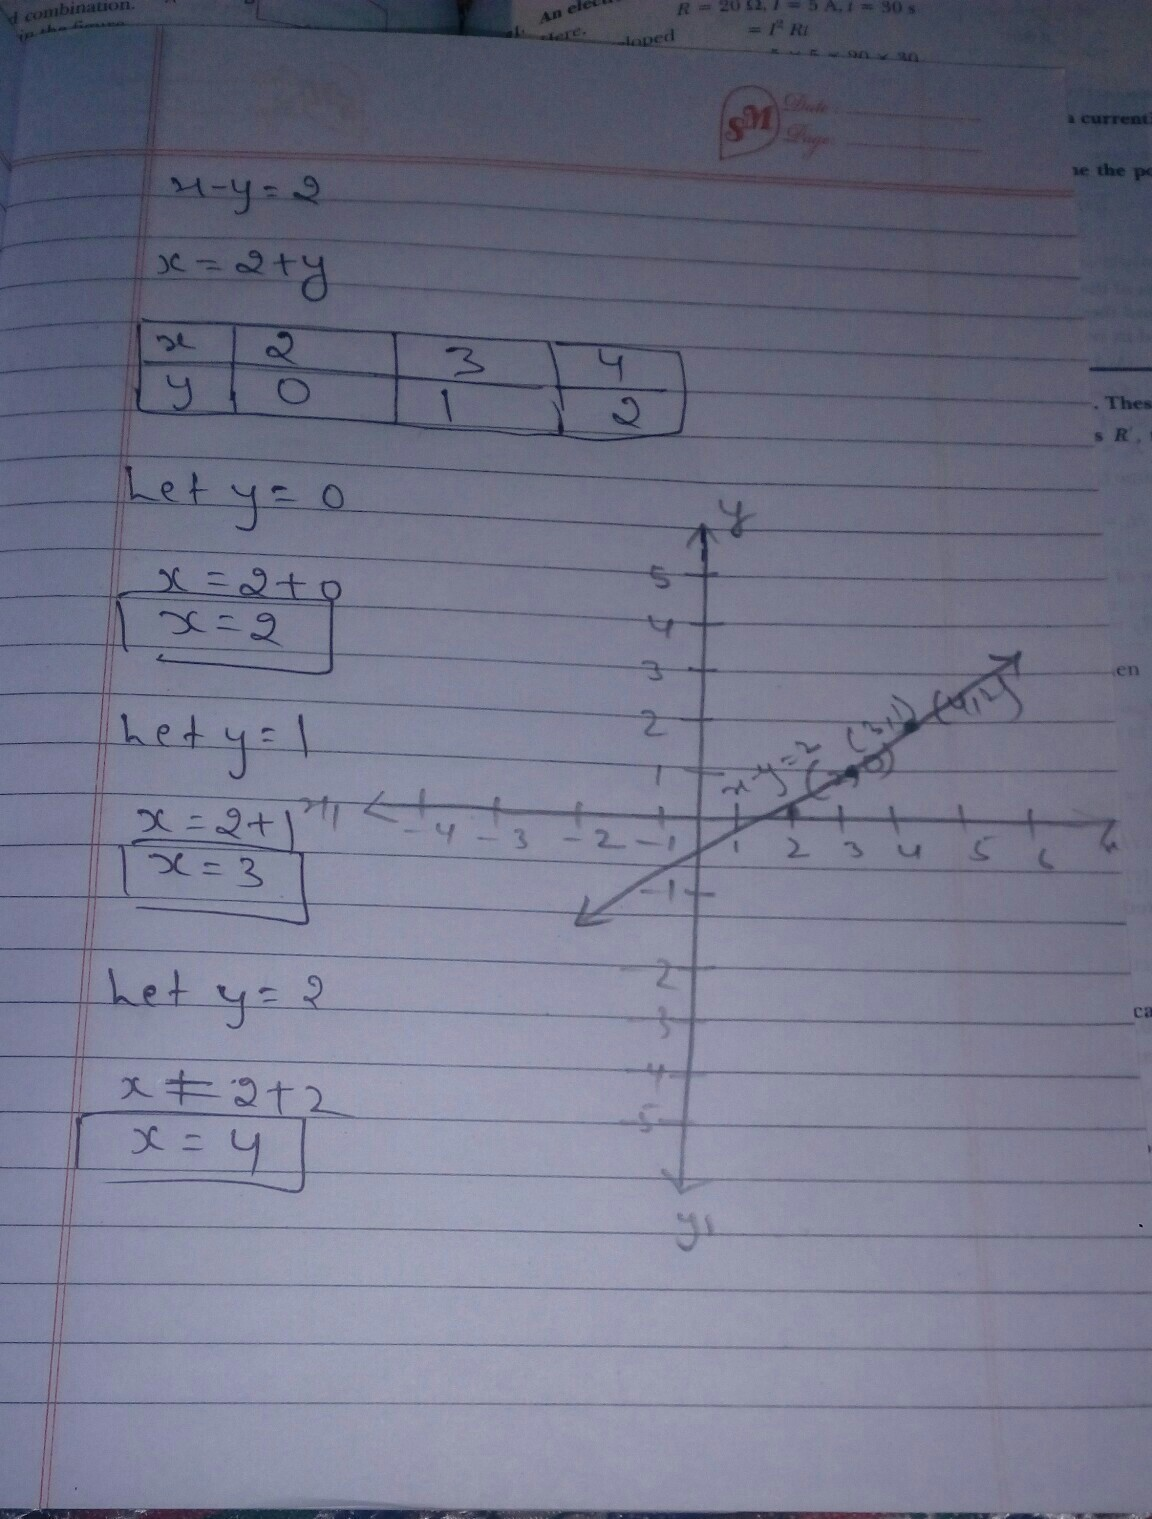 Draw The Graph Of The Linear Equations In Two Variable X Y